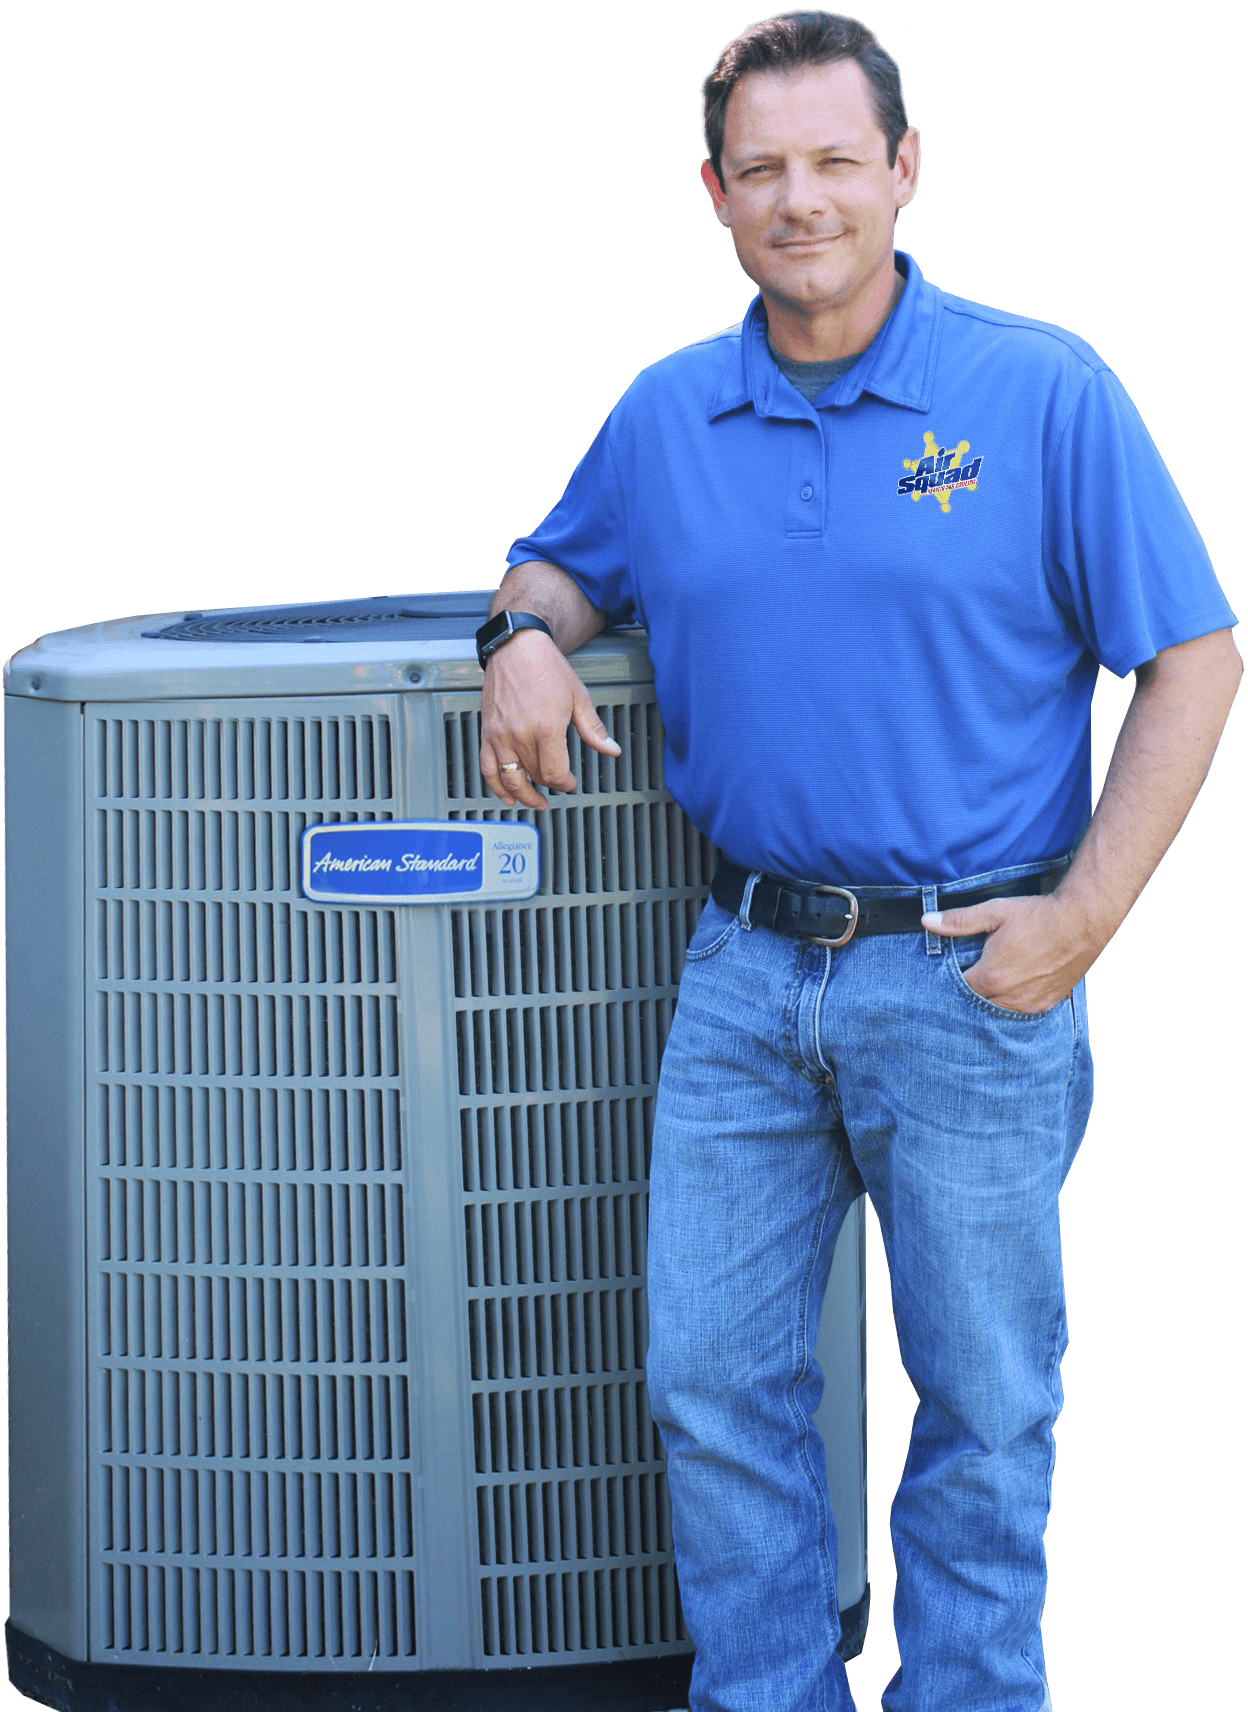 Owner Richard leaning on an AC unit.